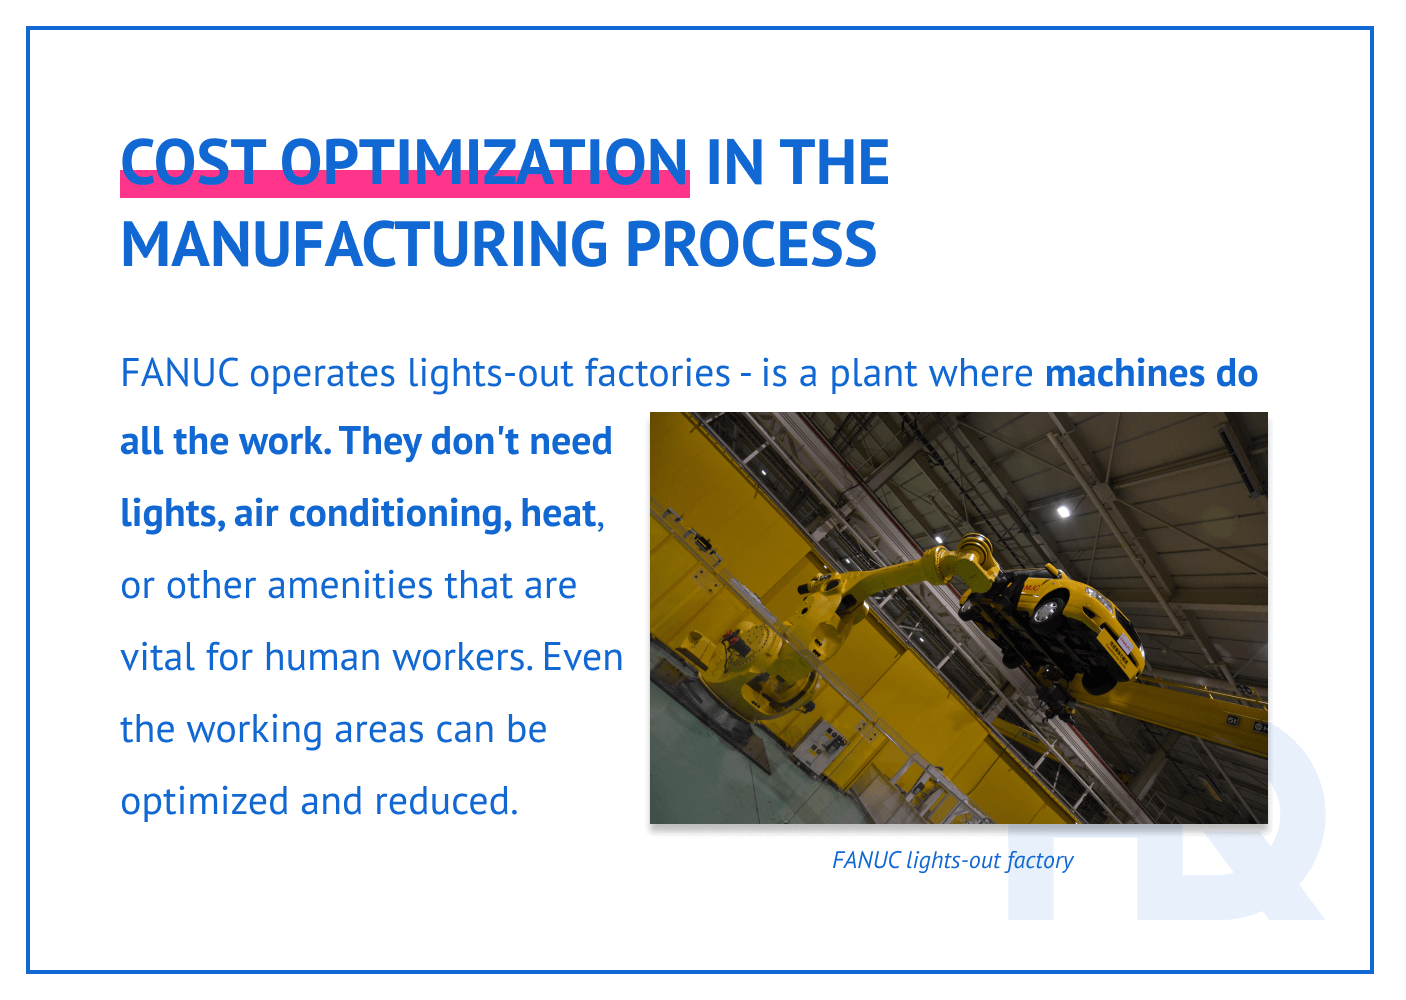 Cost optimization of the manufacturing process.